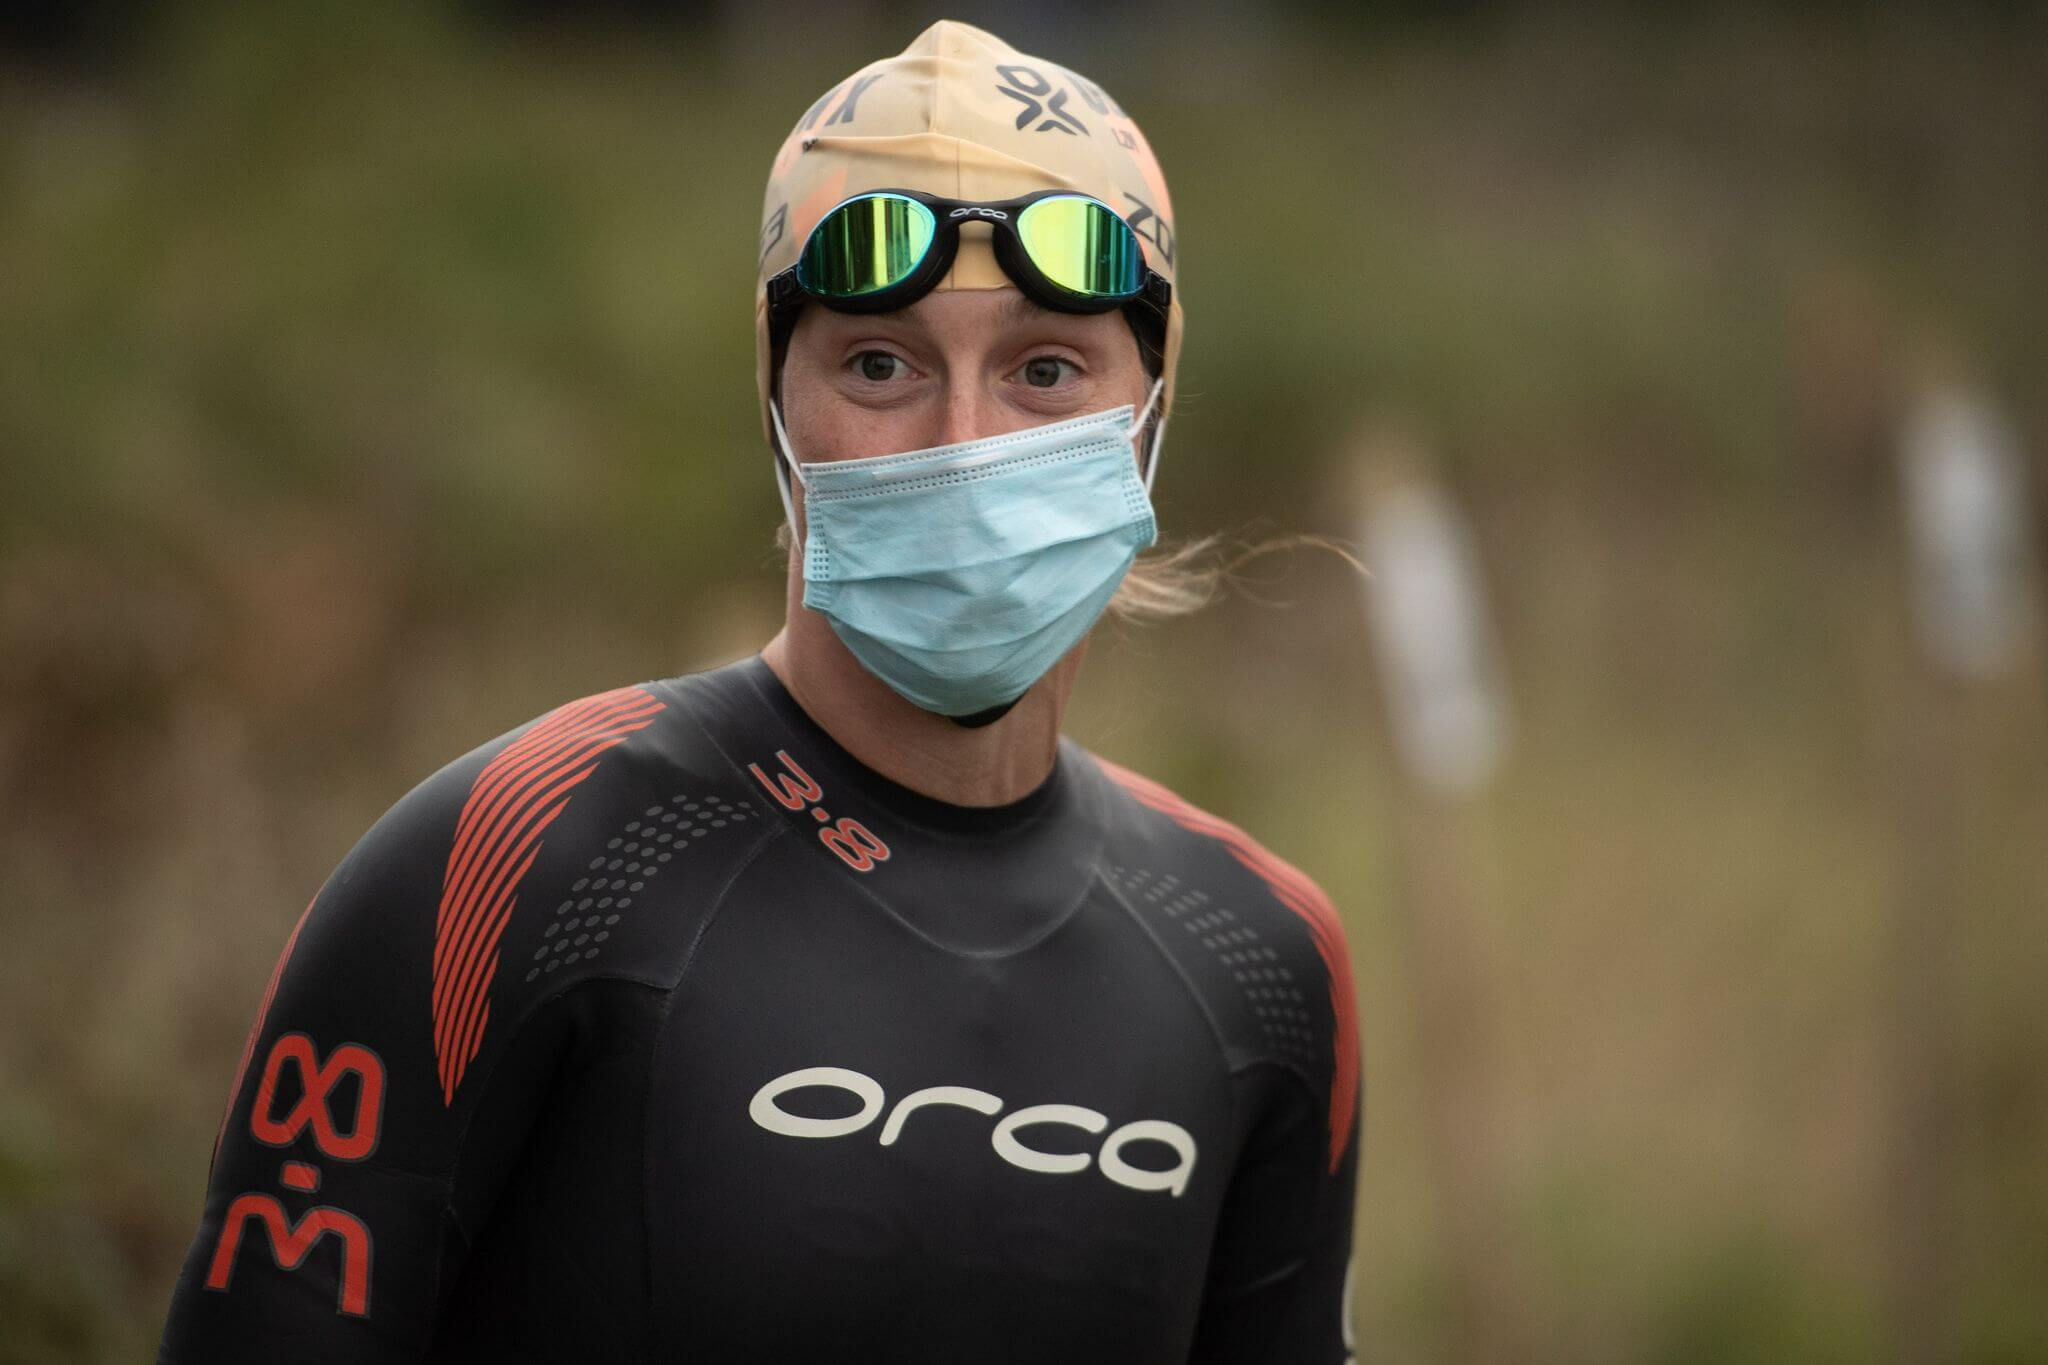 Exmouth: Katrina Matthews before the Outlaw X swim, complete with wet suit and mask. Picture: @KMTri_Coaching